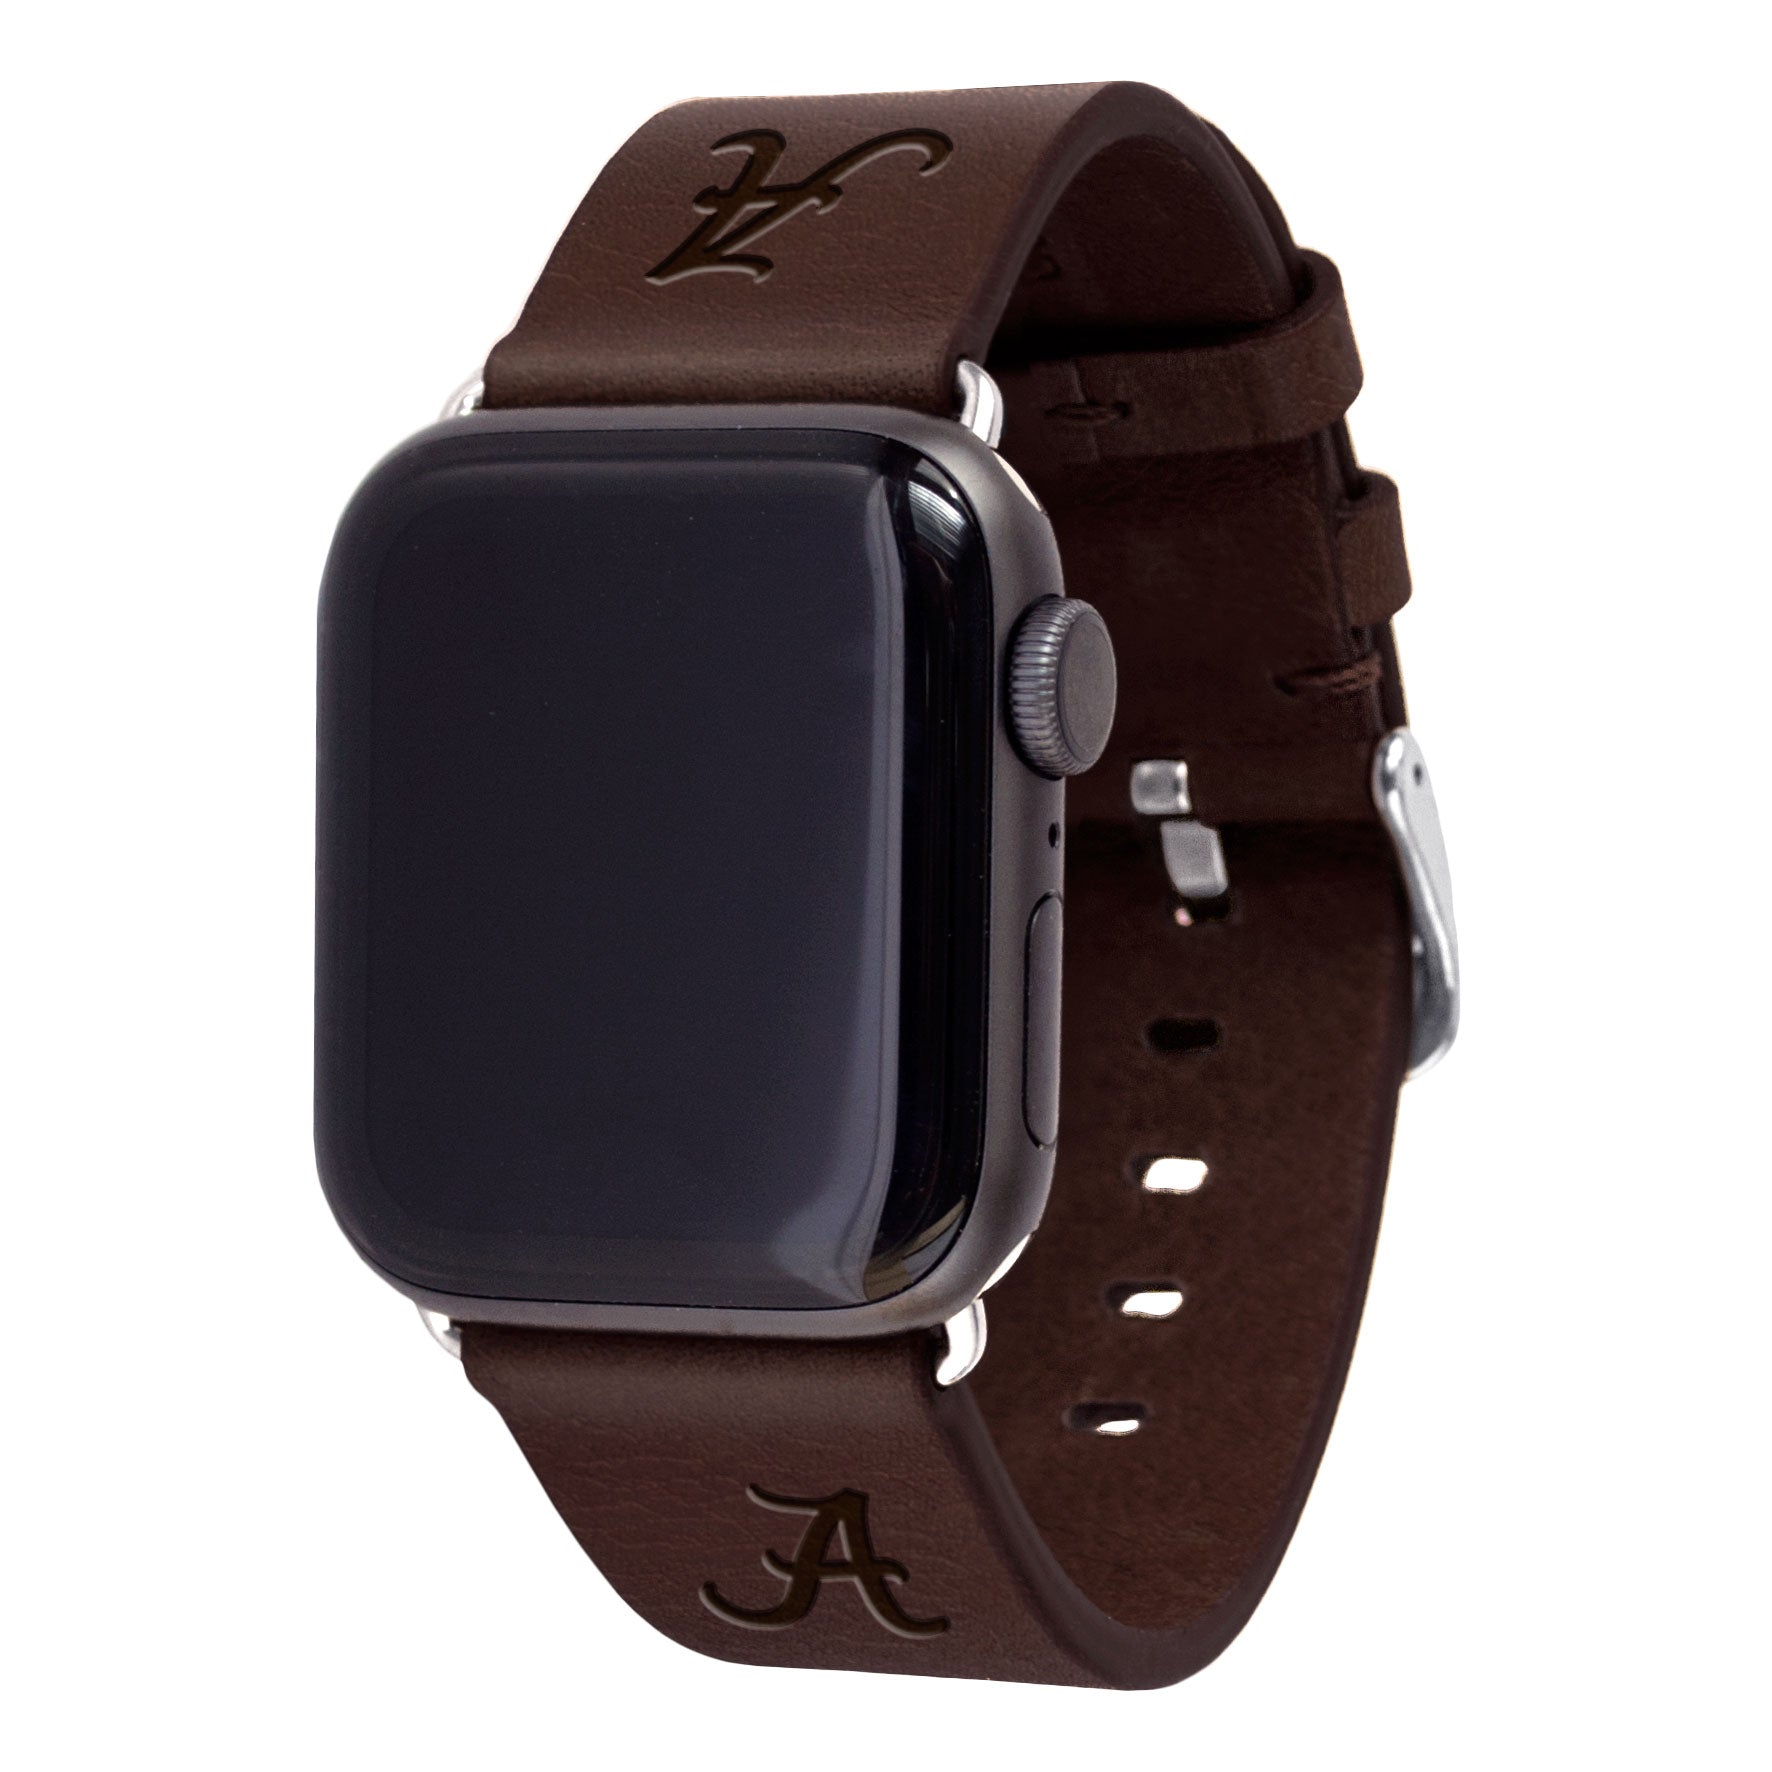 Alabama Crimson Tide Leather Apple Watch Band - AffinityBands